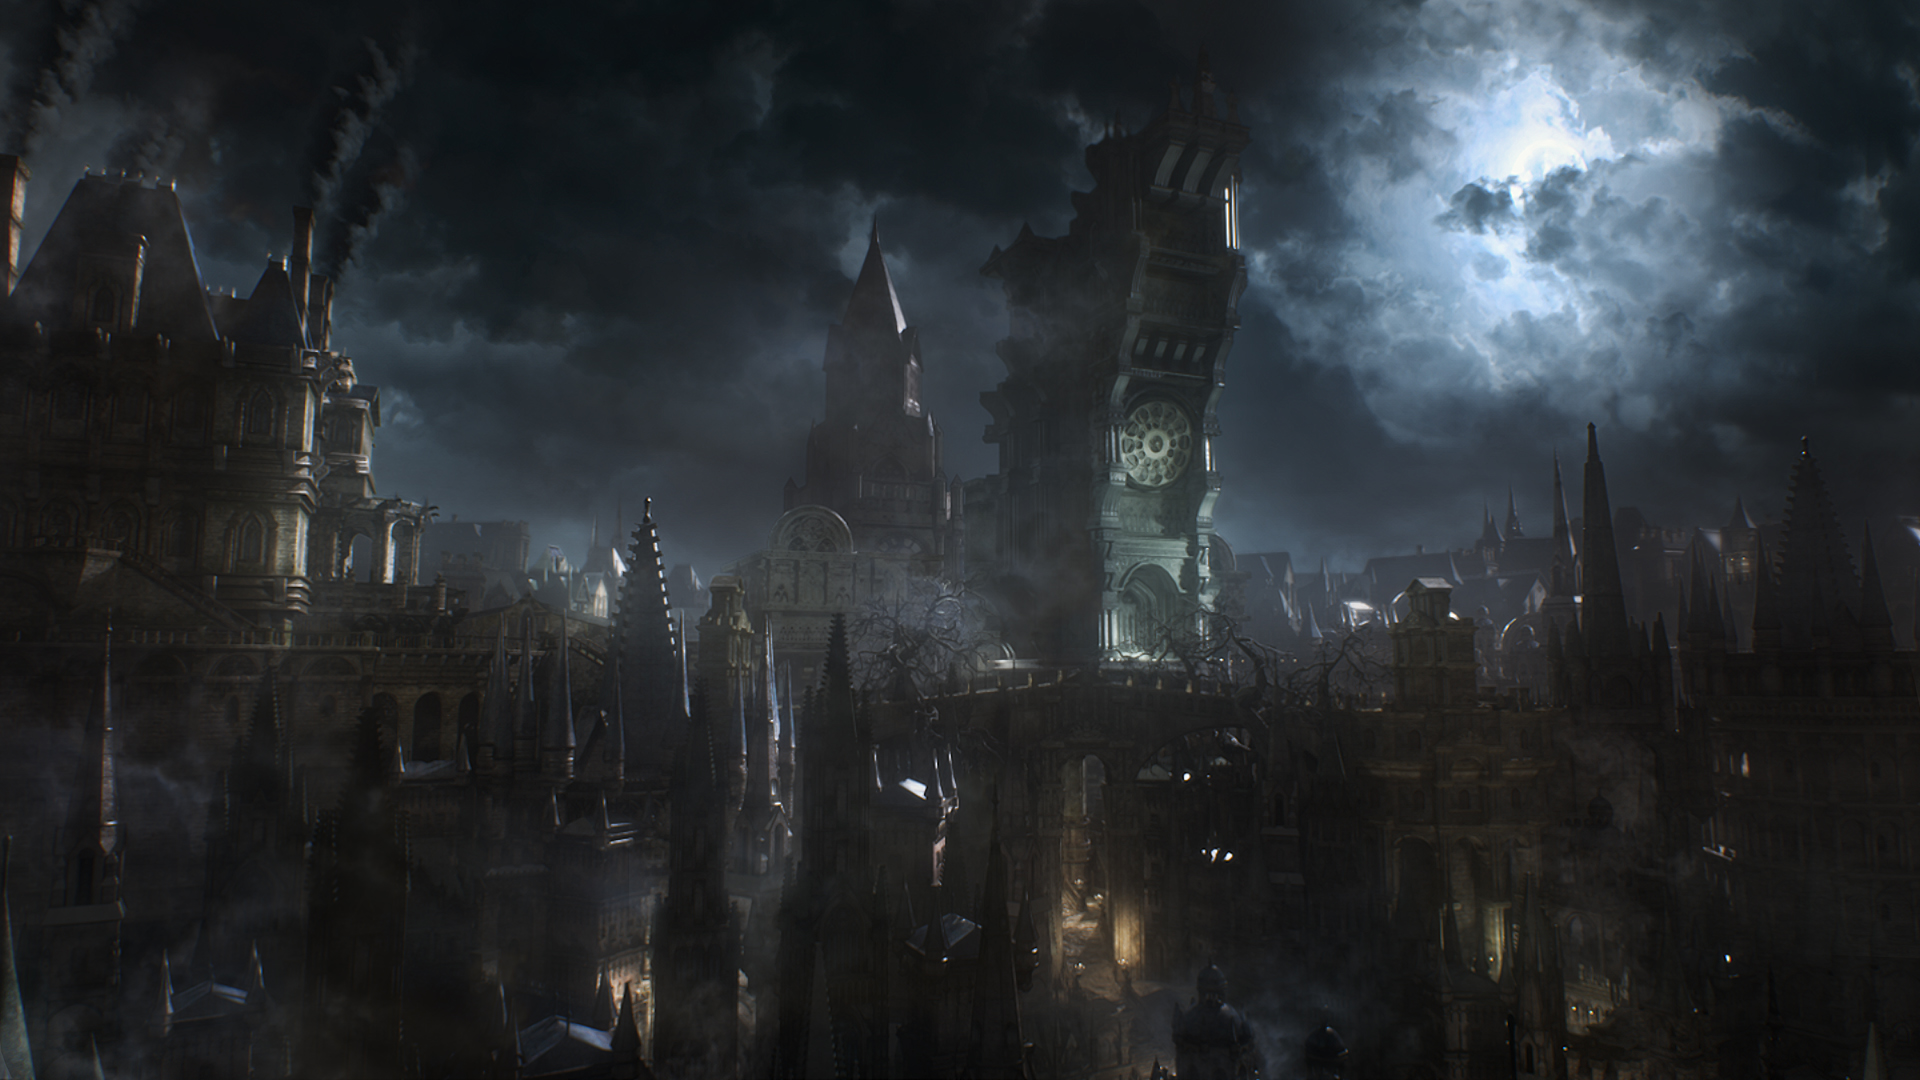 Dark Souls Ii Out Stunning Wallpapers High Quality: 10+ Bloodborne Game High Quality Wallpapers